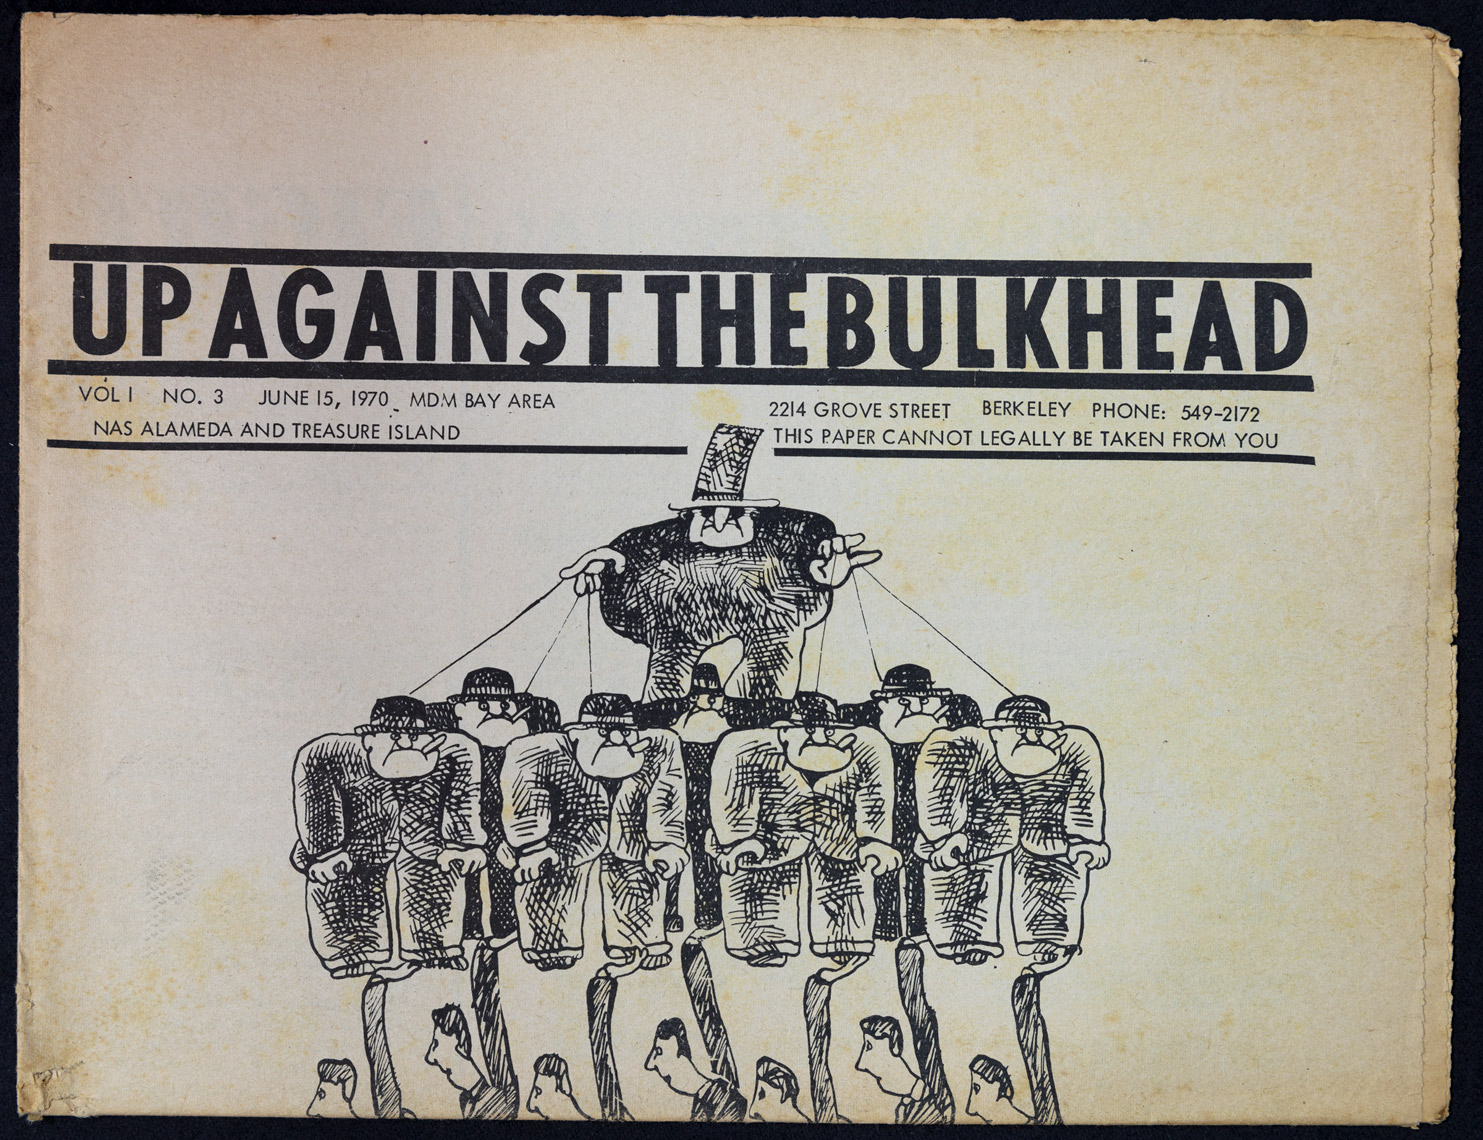 Up-Against-the-Bulkhead-Vol-1-No3-June-15-1970